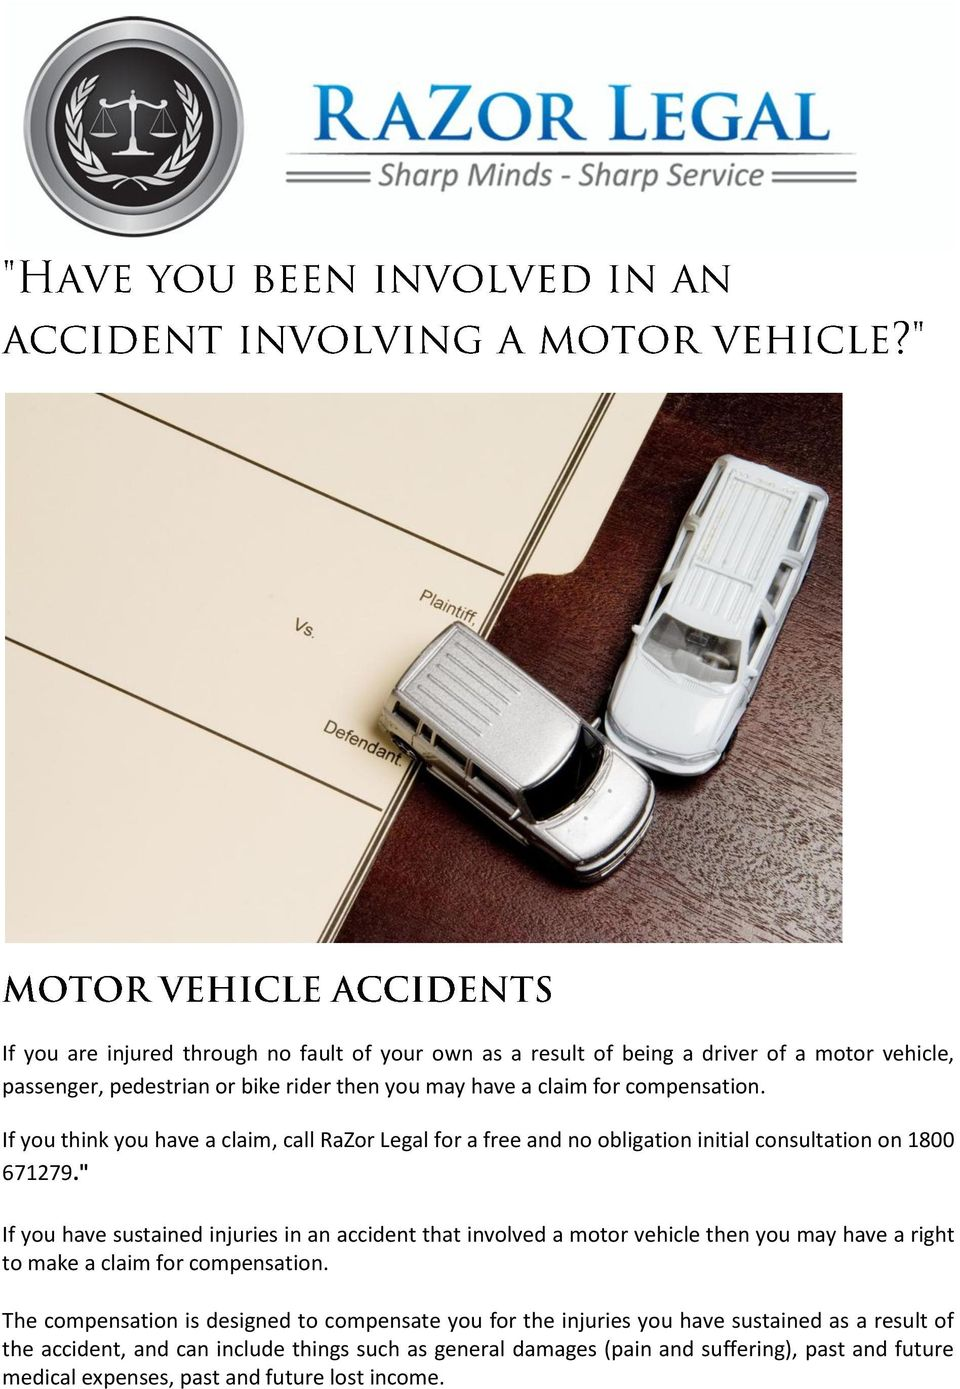 """ If you have sustained injuries in an accident that involved a motor vehicle then you may have a right to make a claim for compensation."